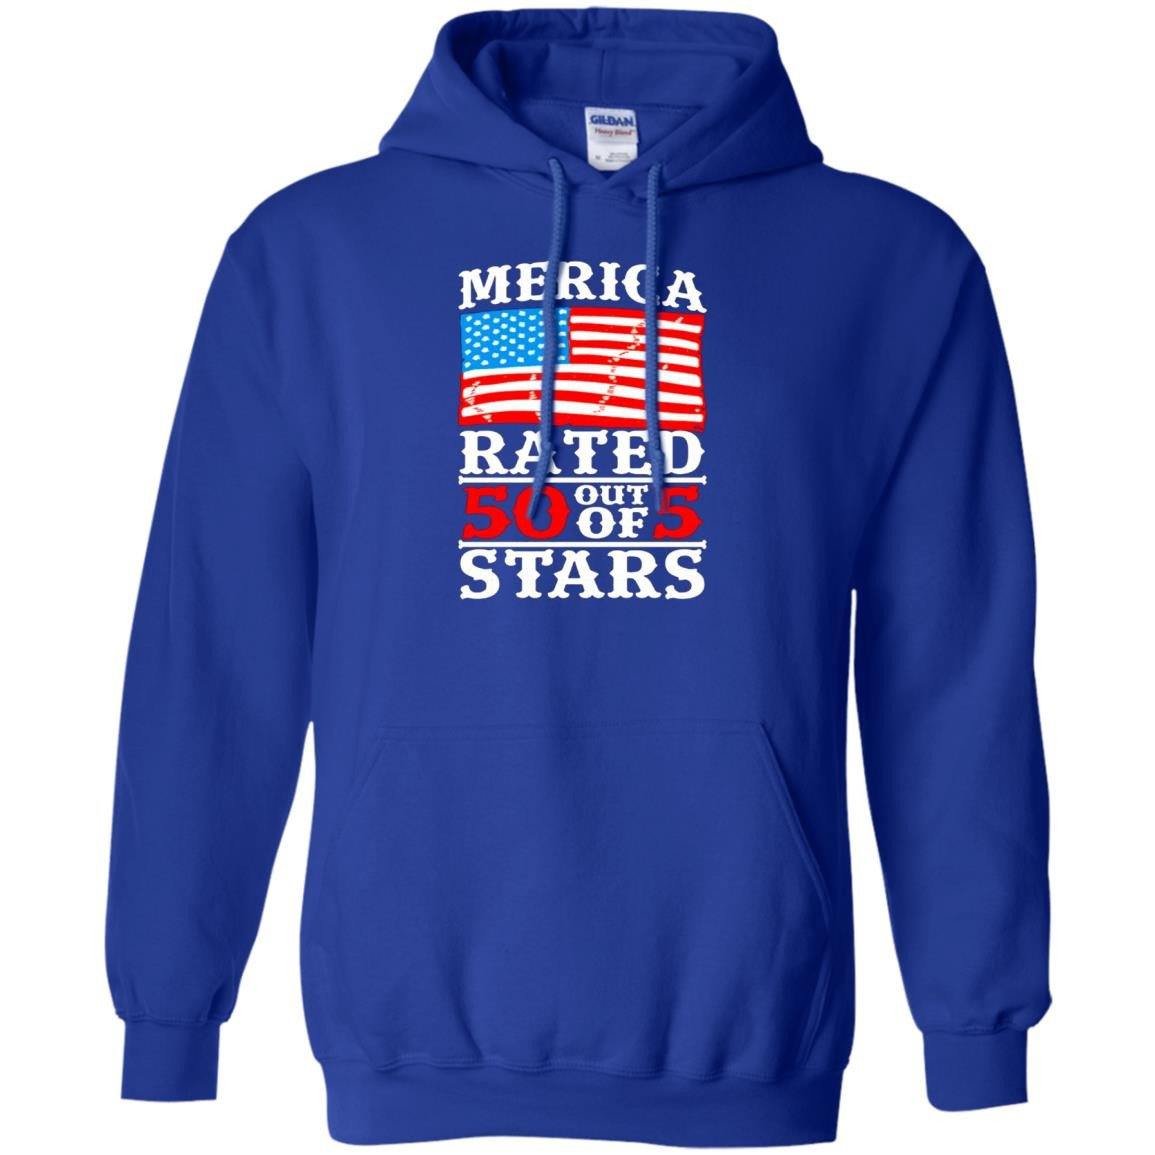 America Shirts MERICA  RATED 50 OUT OF 5 STARS T-shirts Hoodies Sweatshirts